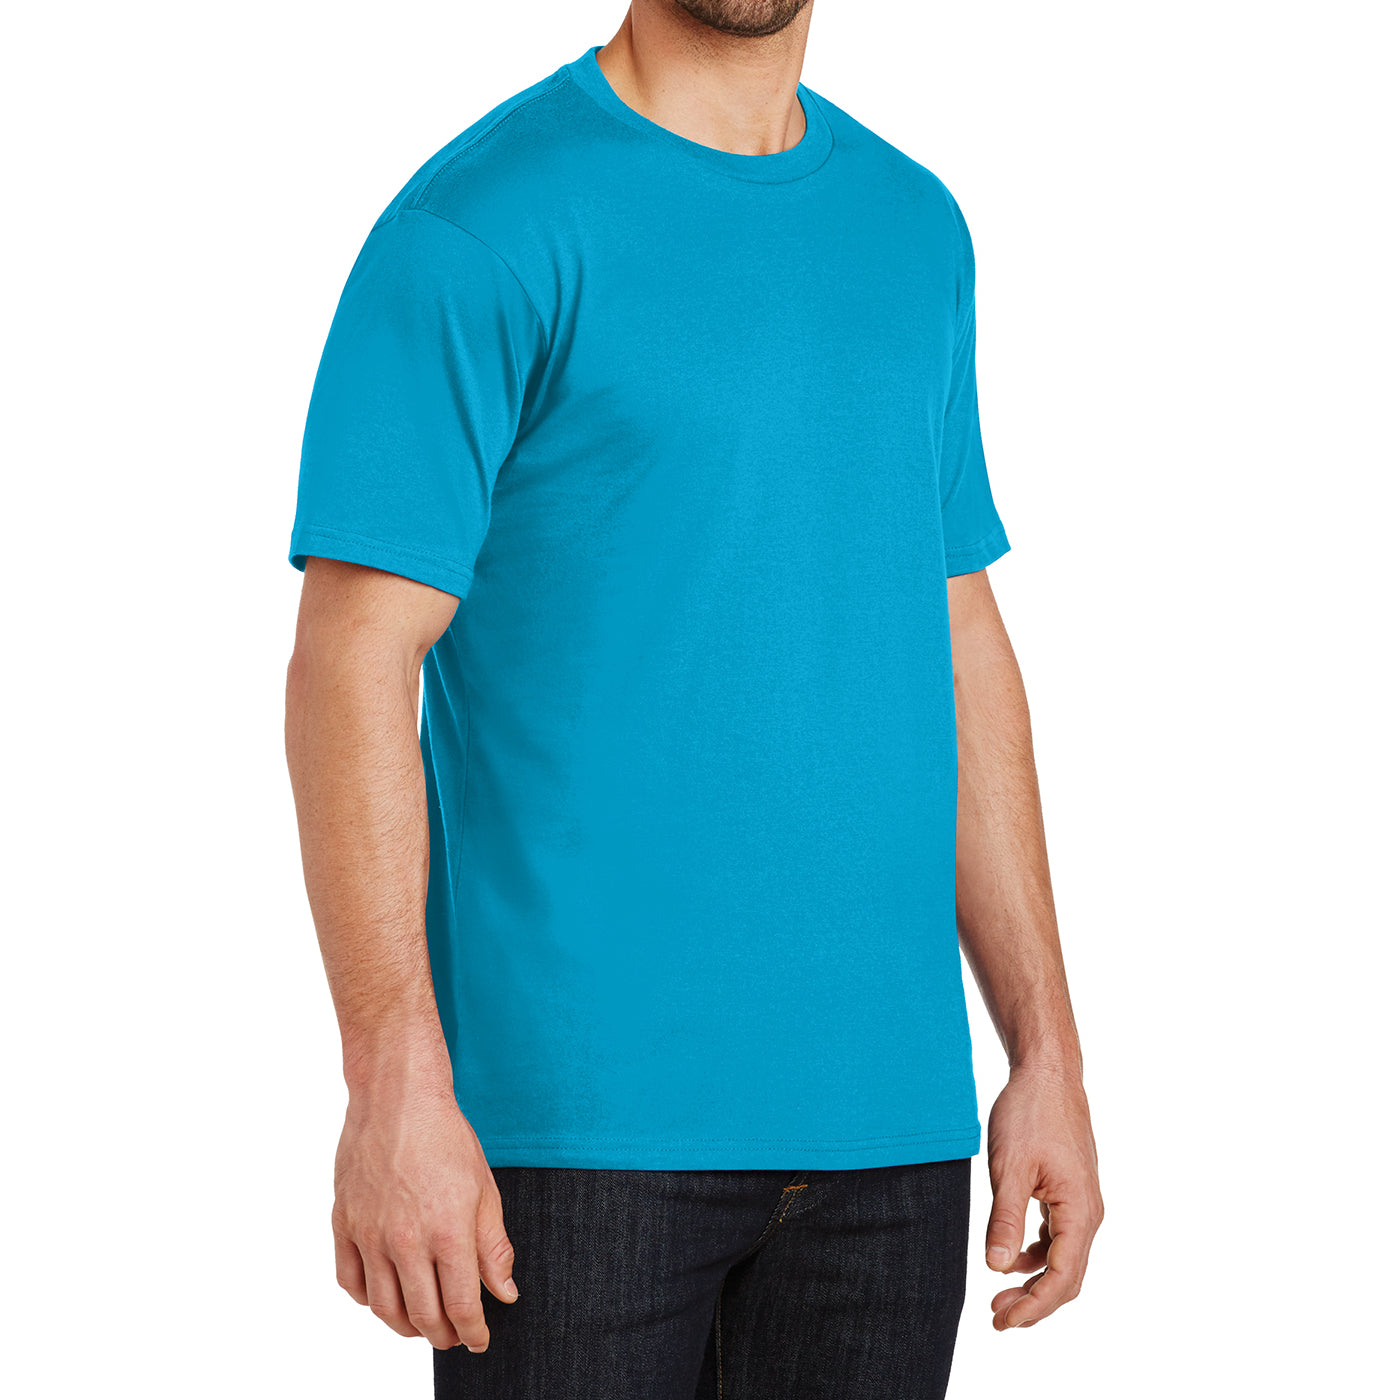 Mens Perfect Weight Crew Tee - Bright Turquoise - Side